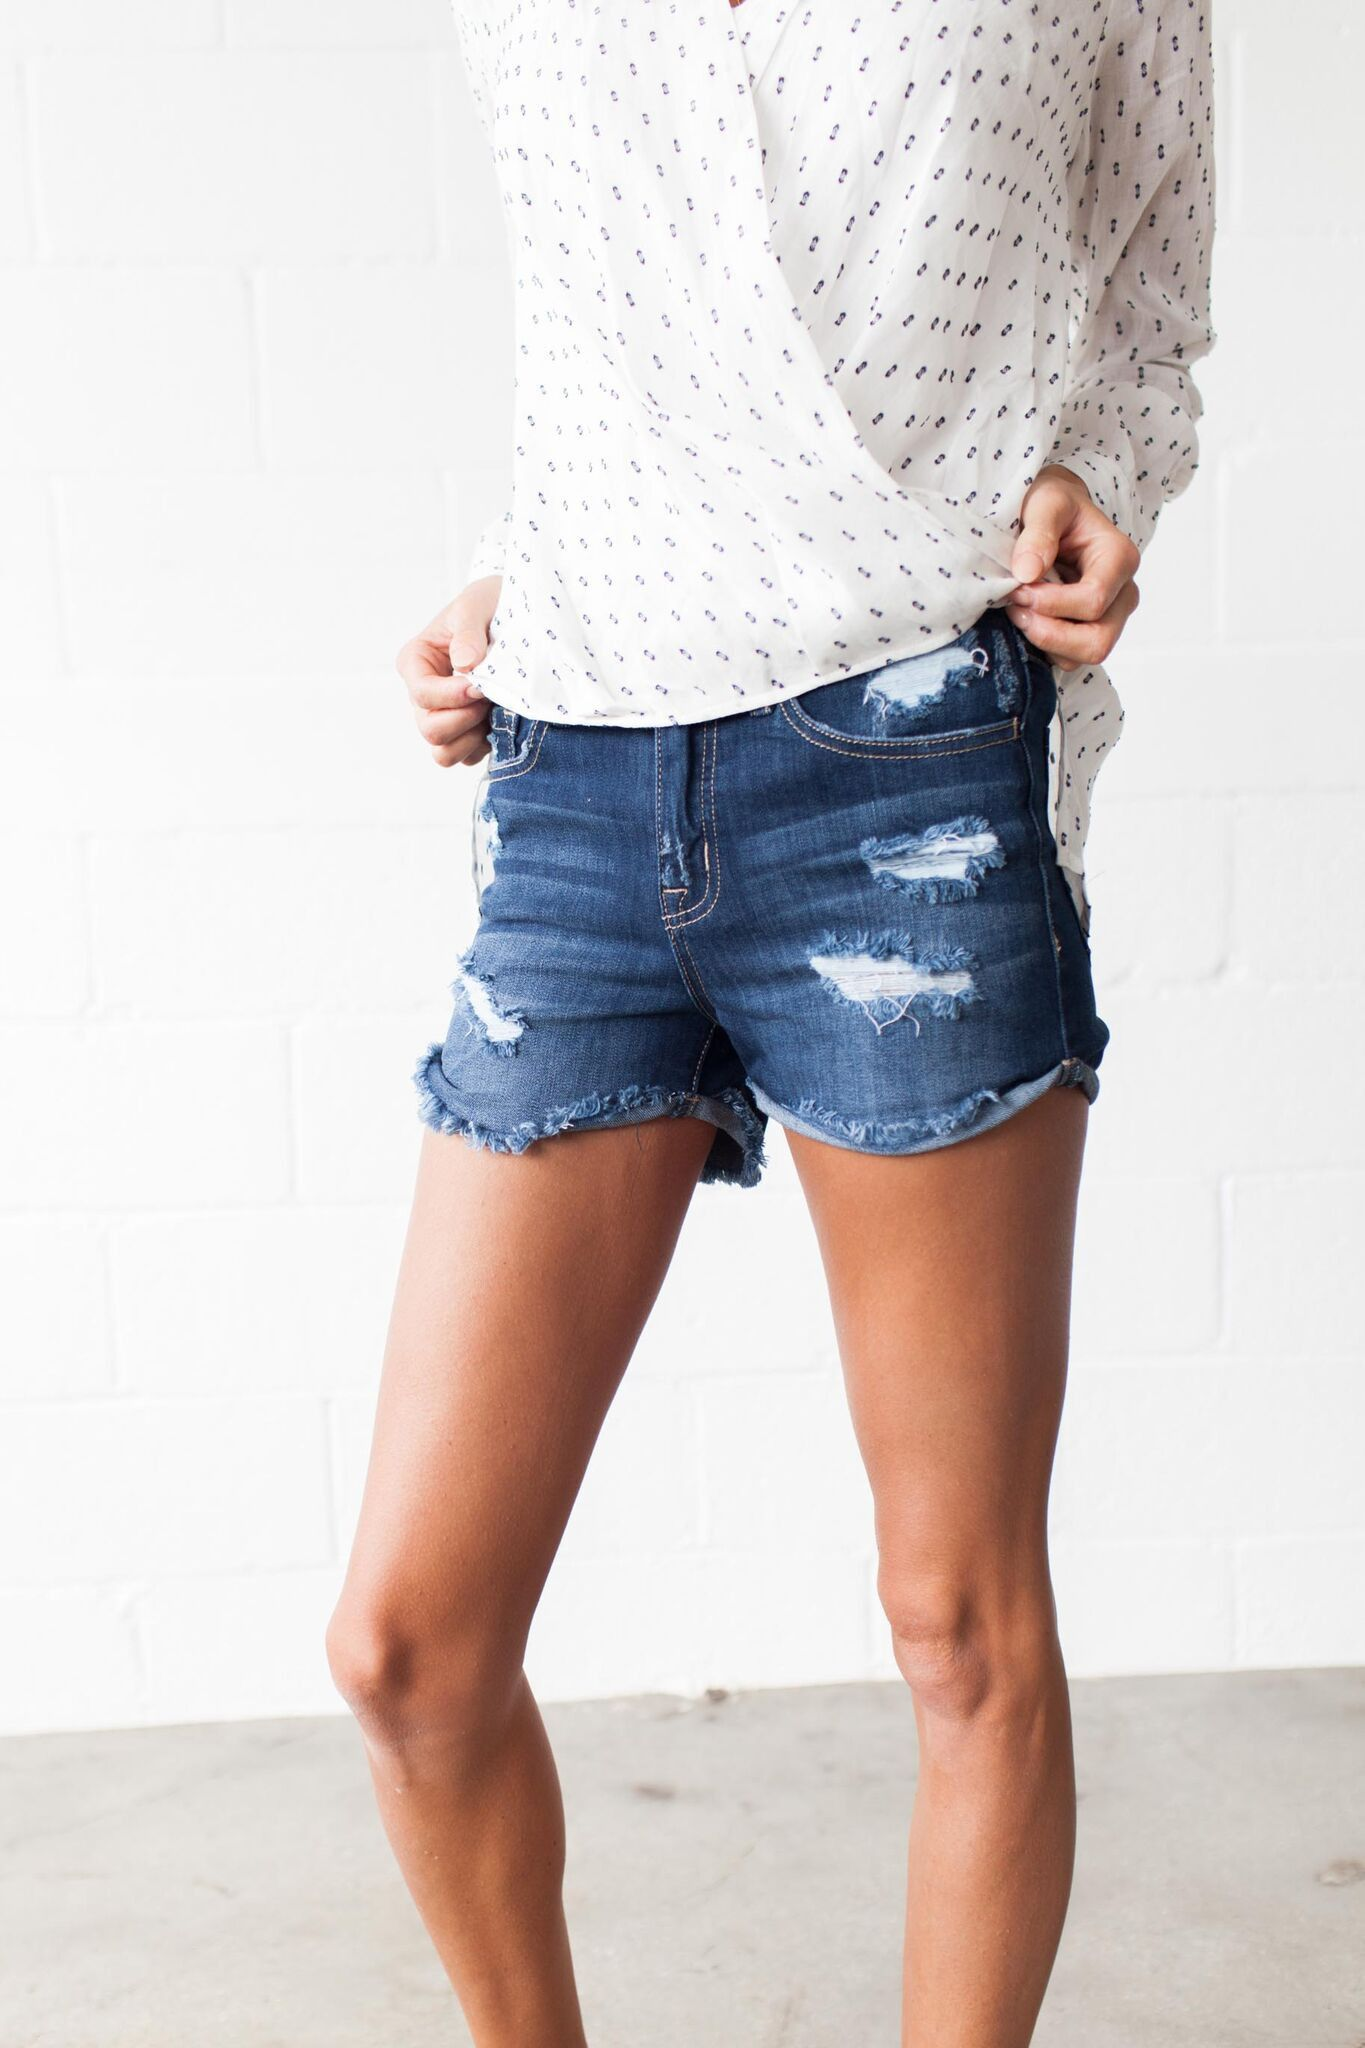 Our Snowcones and Slushies High Rise Denim Shorts feature the standard five pocket style, frayed hem with cuffed sewn sides, and all over distressing. - Unlined - 55% Cotton, 23% Rayon, 20% Polyester,